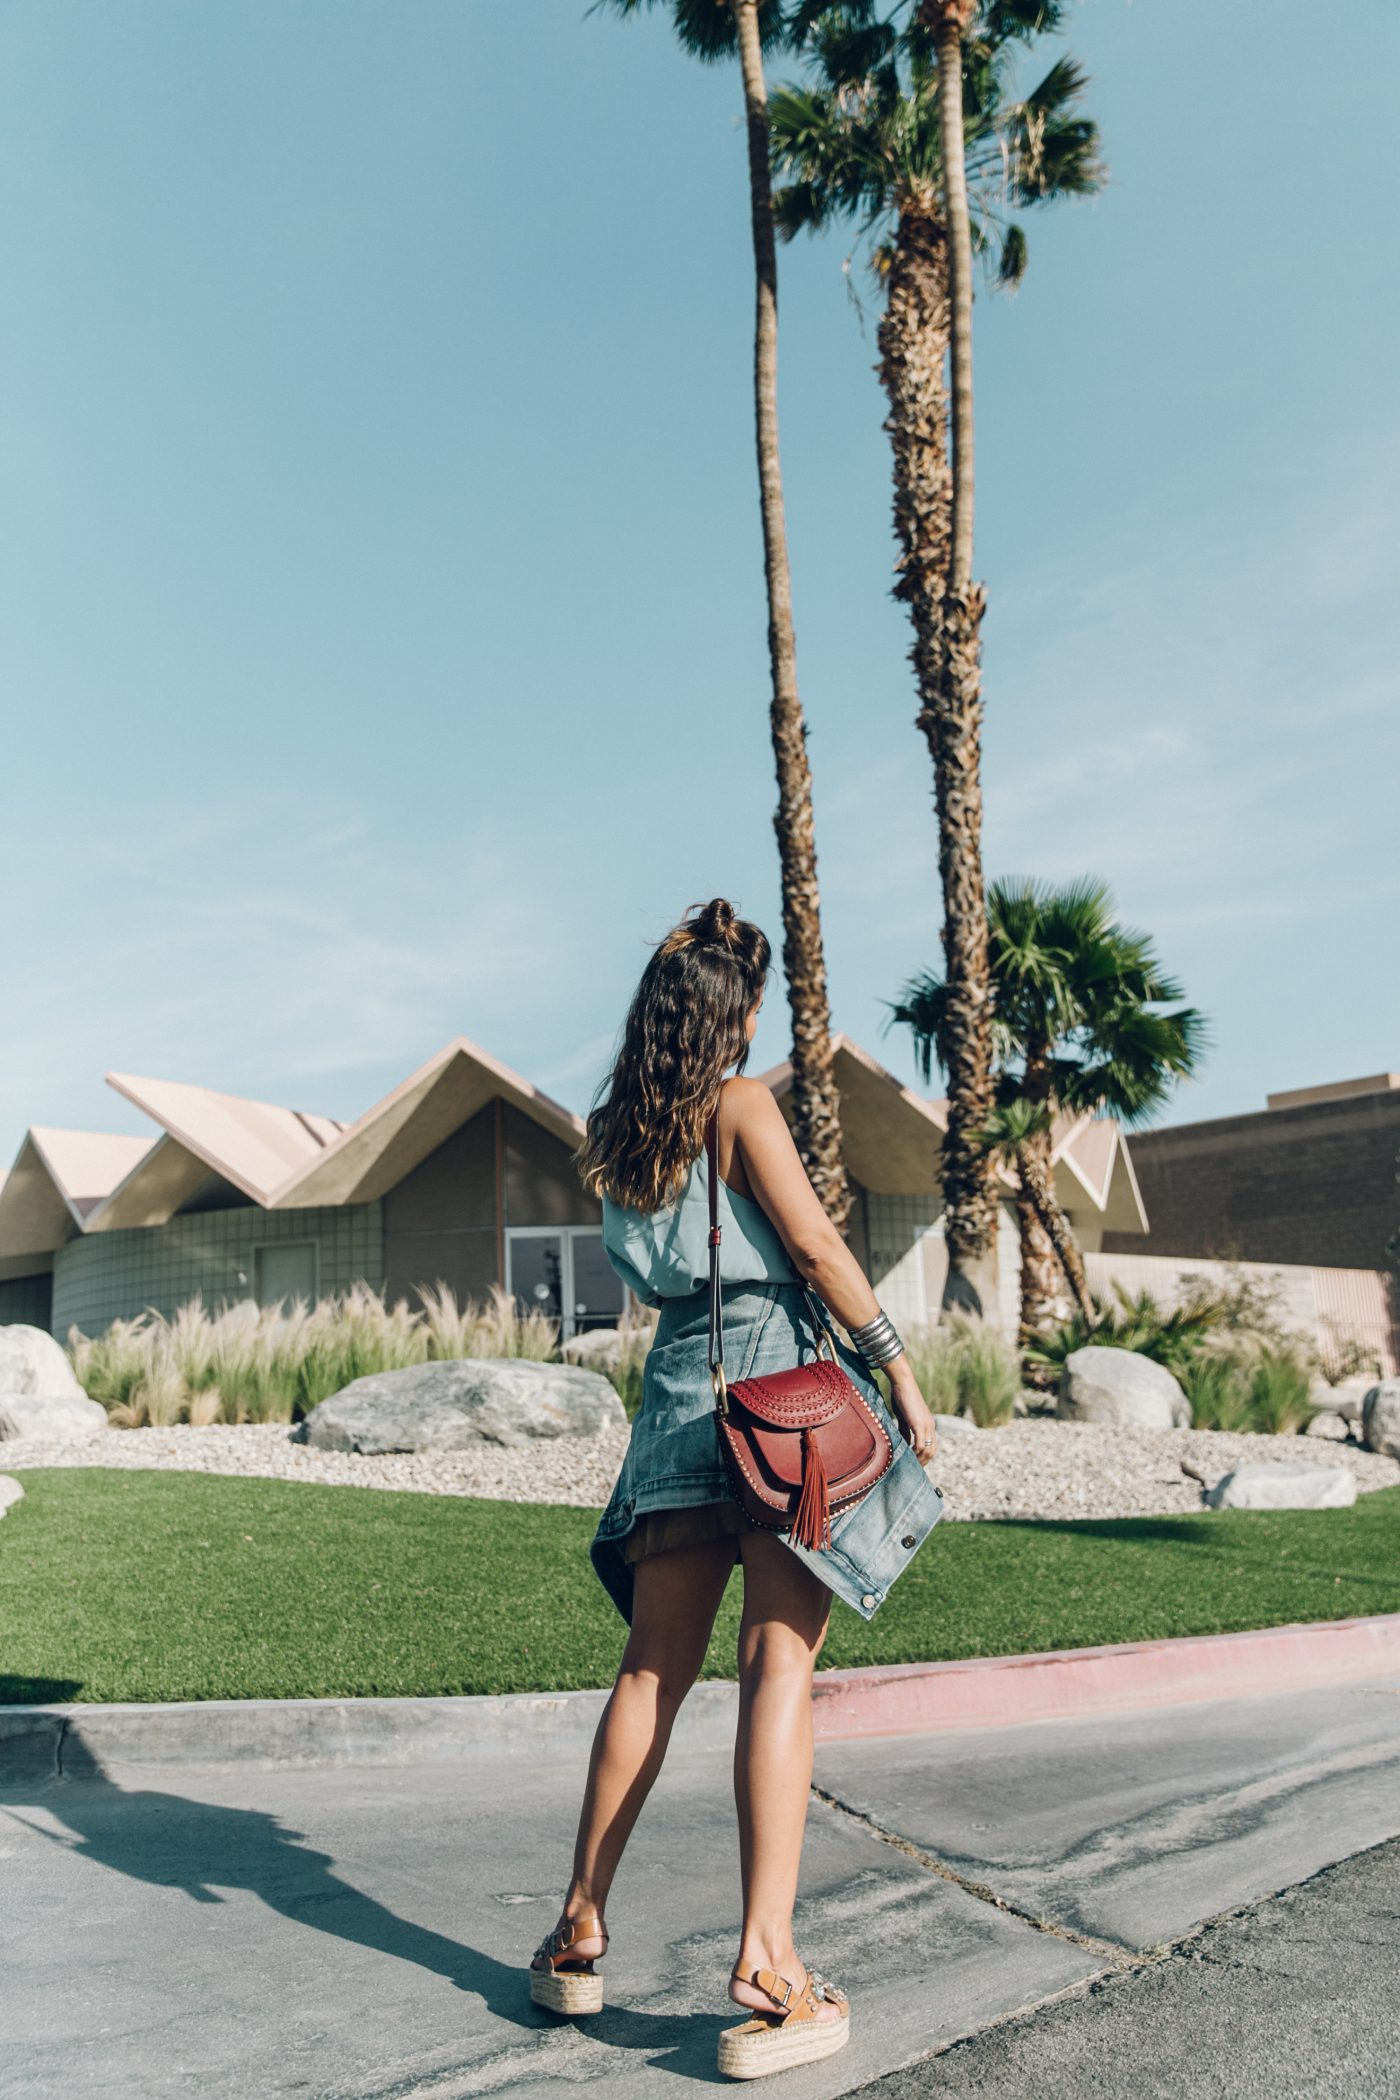 Denim_Jacket-Saint_Laurent-Chloe_Top-Suede_Skirt-Chloe_Hudson_Bag-Espadrilles-Coachella-Palm_Springs-Outfit-Collage_Vintage-50